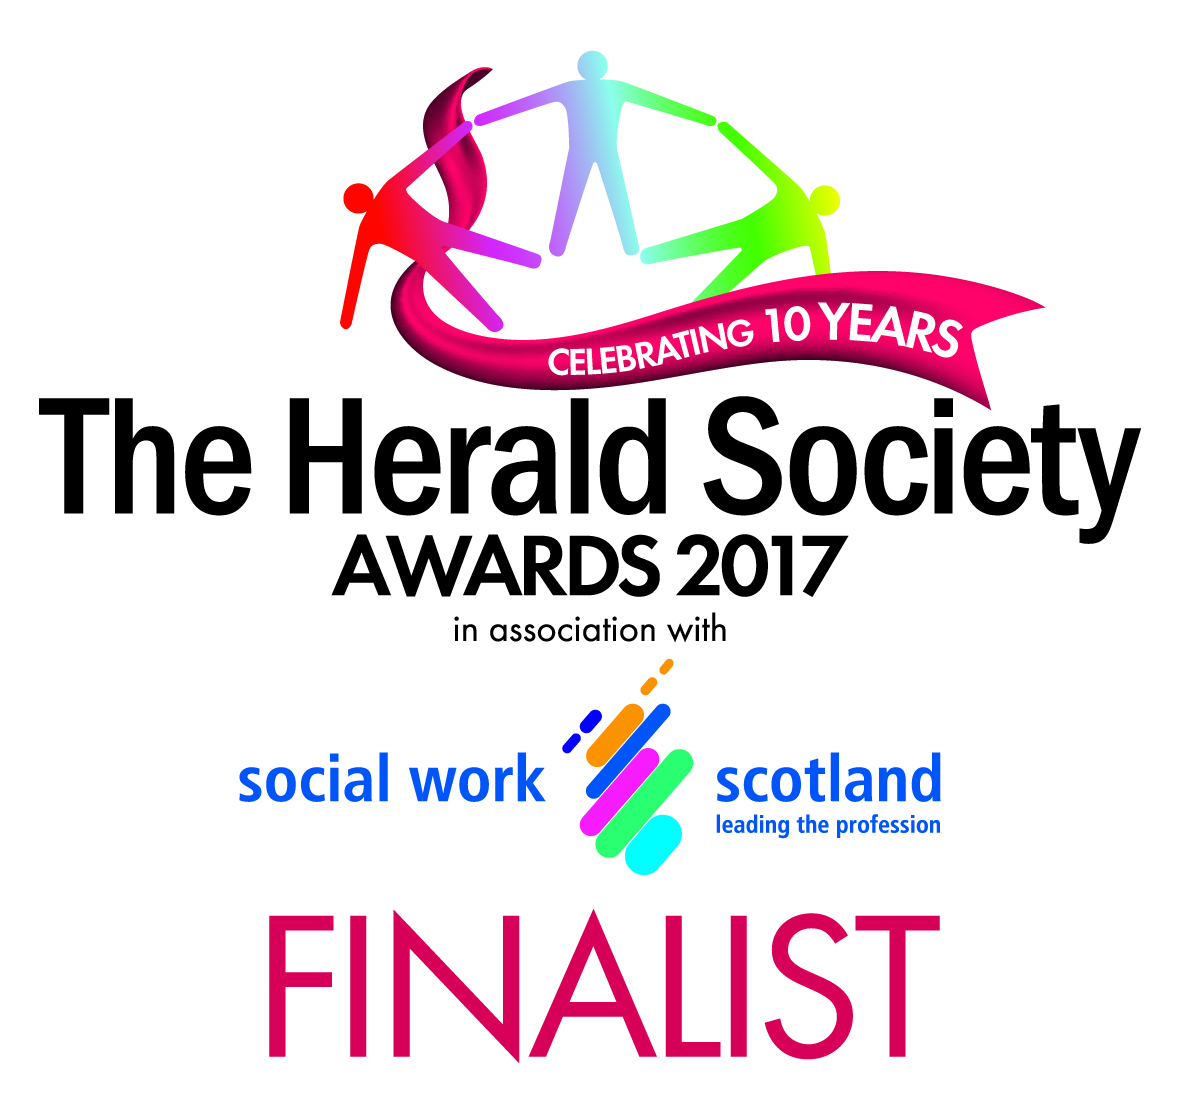 Early Years Scotland nominated for Herald Society Award